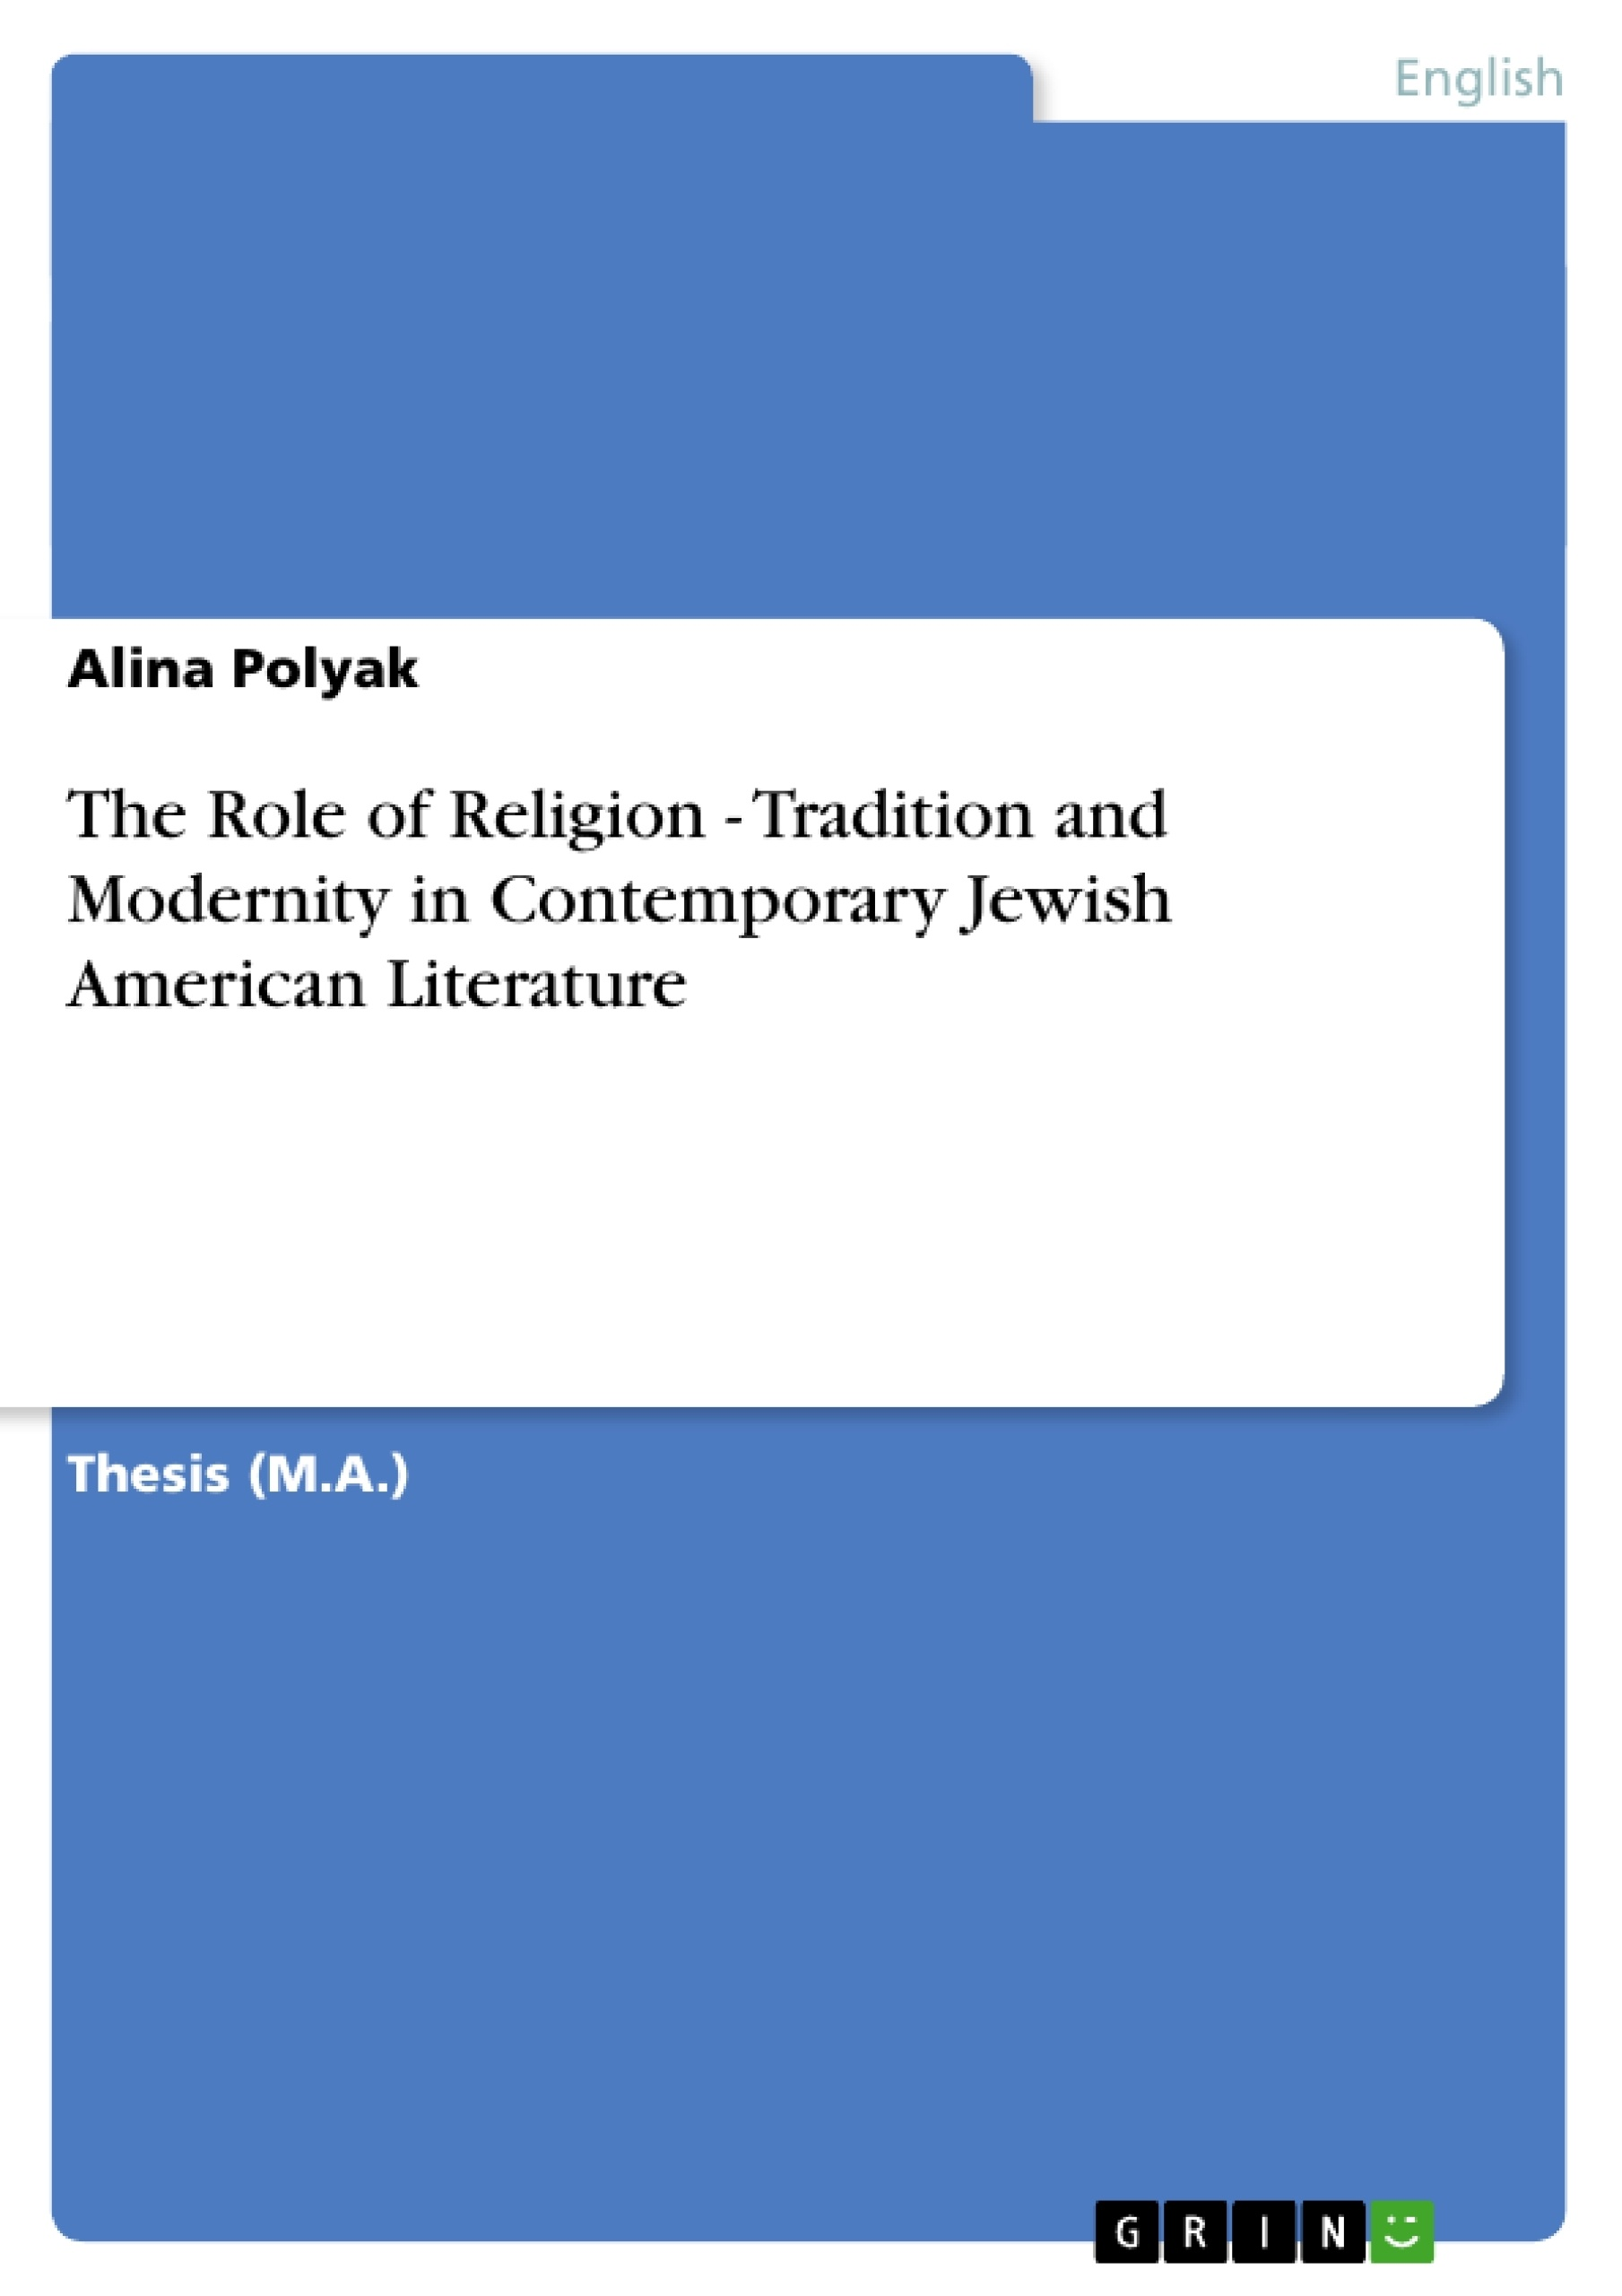 role of women in jewish religion essay View essay - religion 107 essay from relg 107 at university of new mexico jewish and islamic views on the role of women within marriage gender equality is a quite controversial issue in todays.